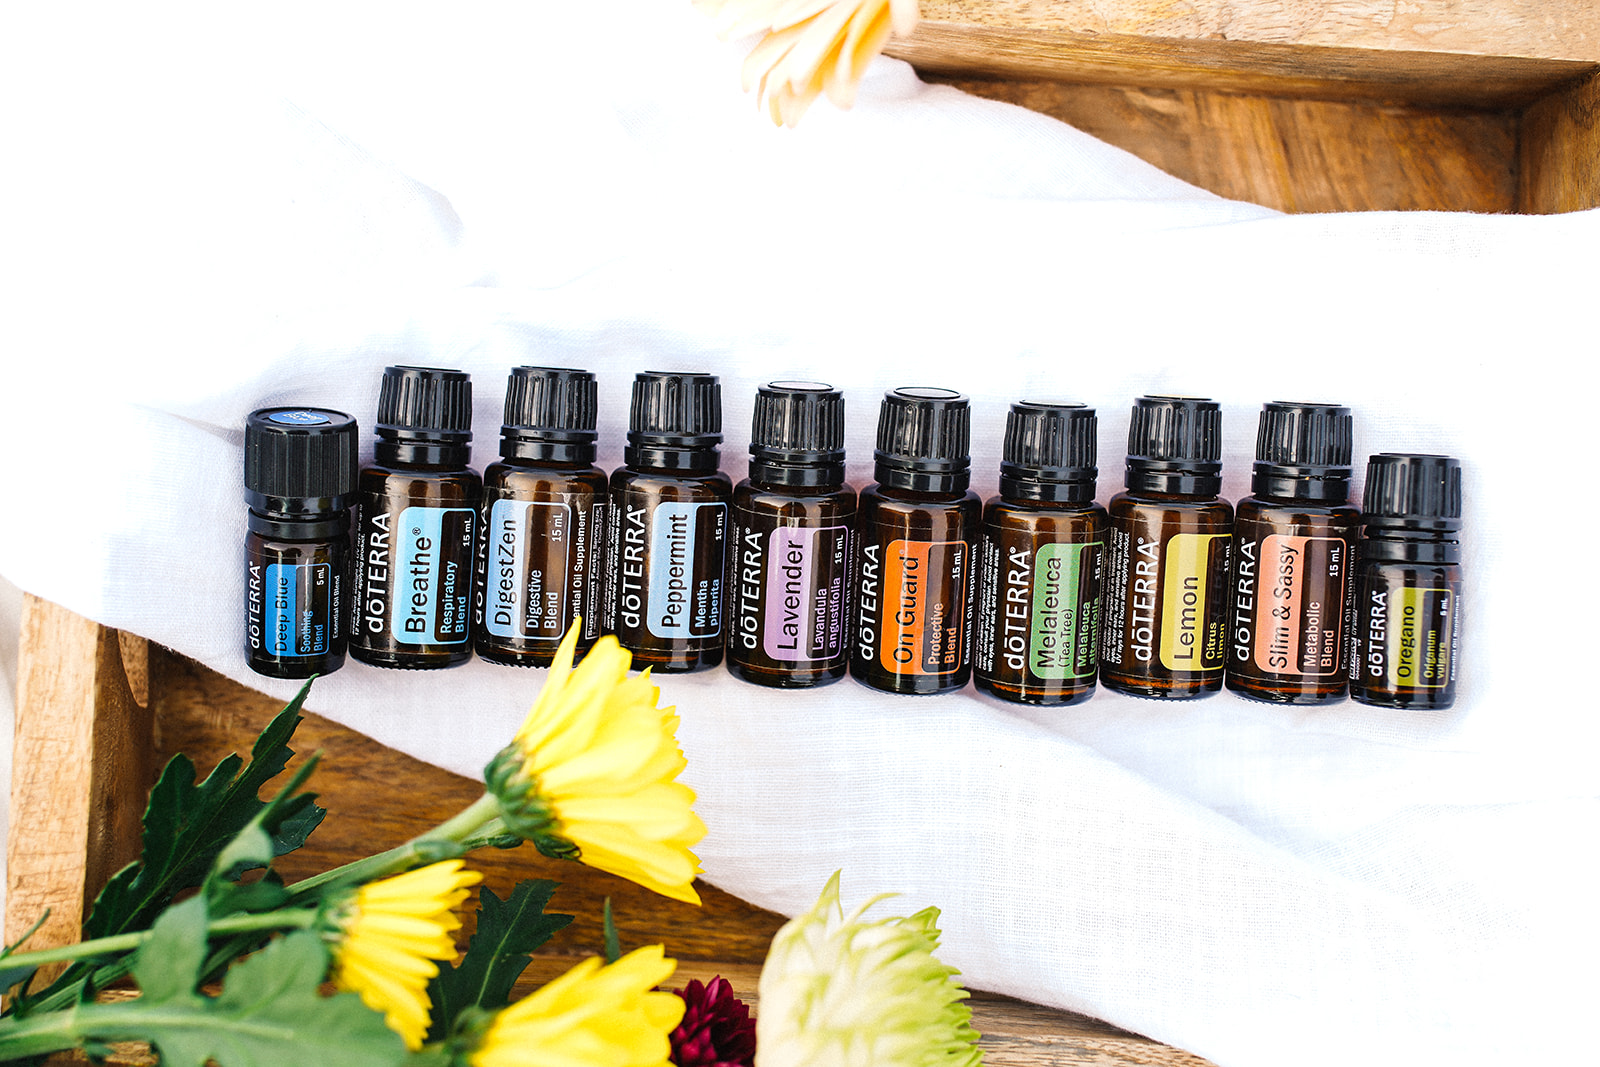 150 Ways to Use the Top 10 Oils